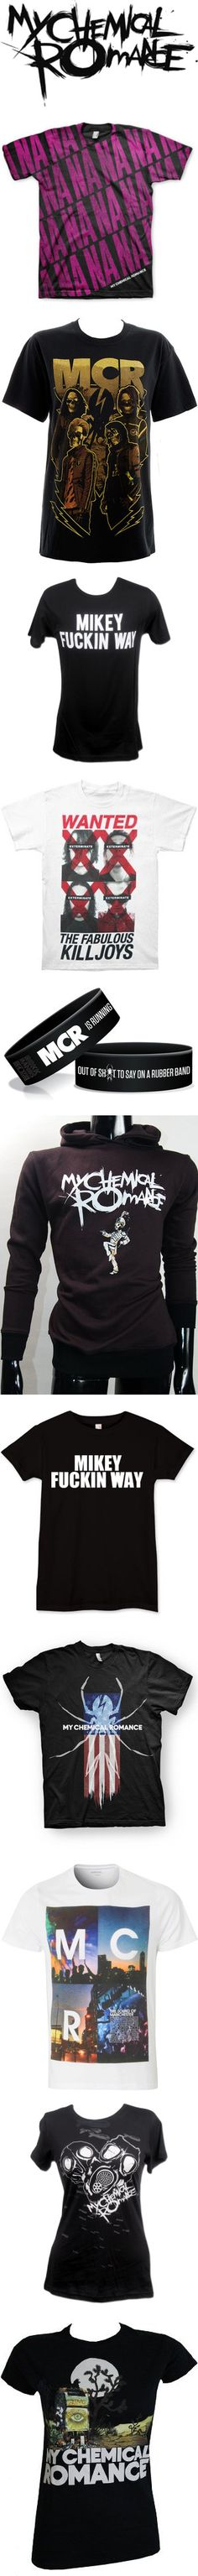 """Band Merch: My Chemical Romance"" by barakatwhore ❤ liked on Polyvore"